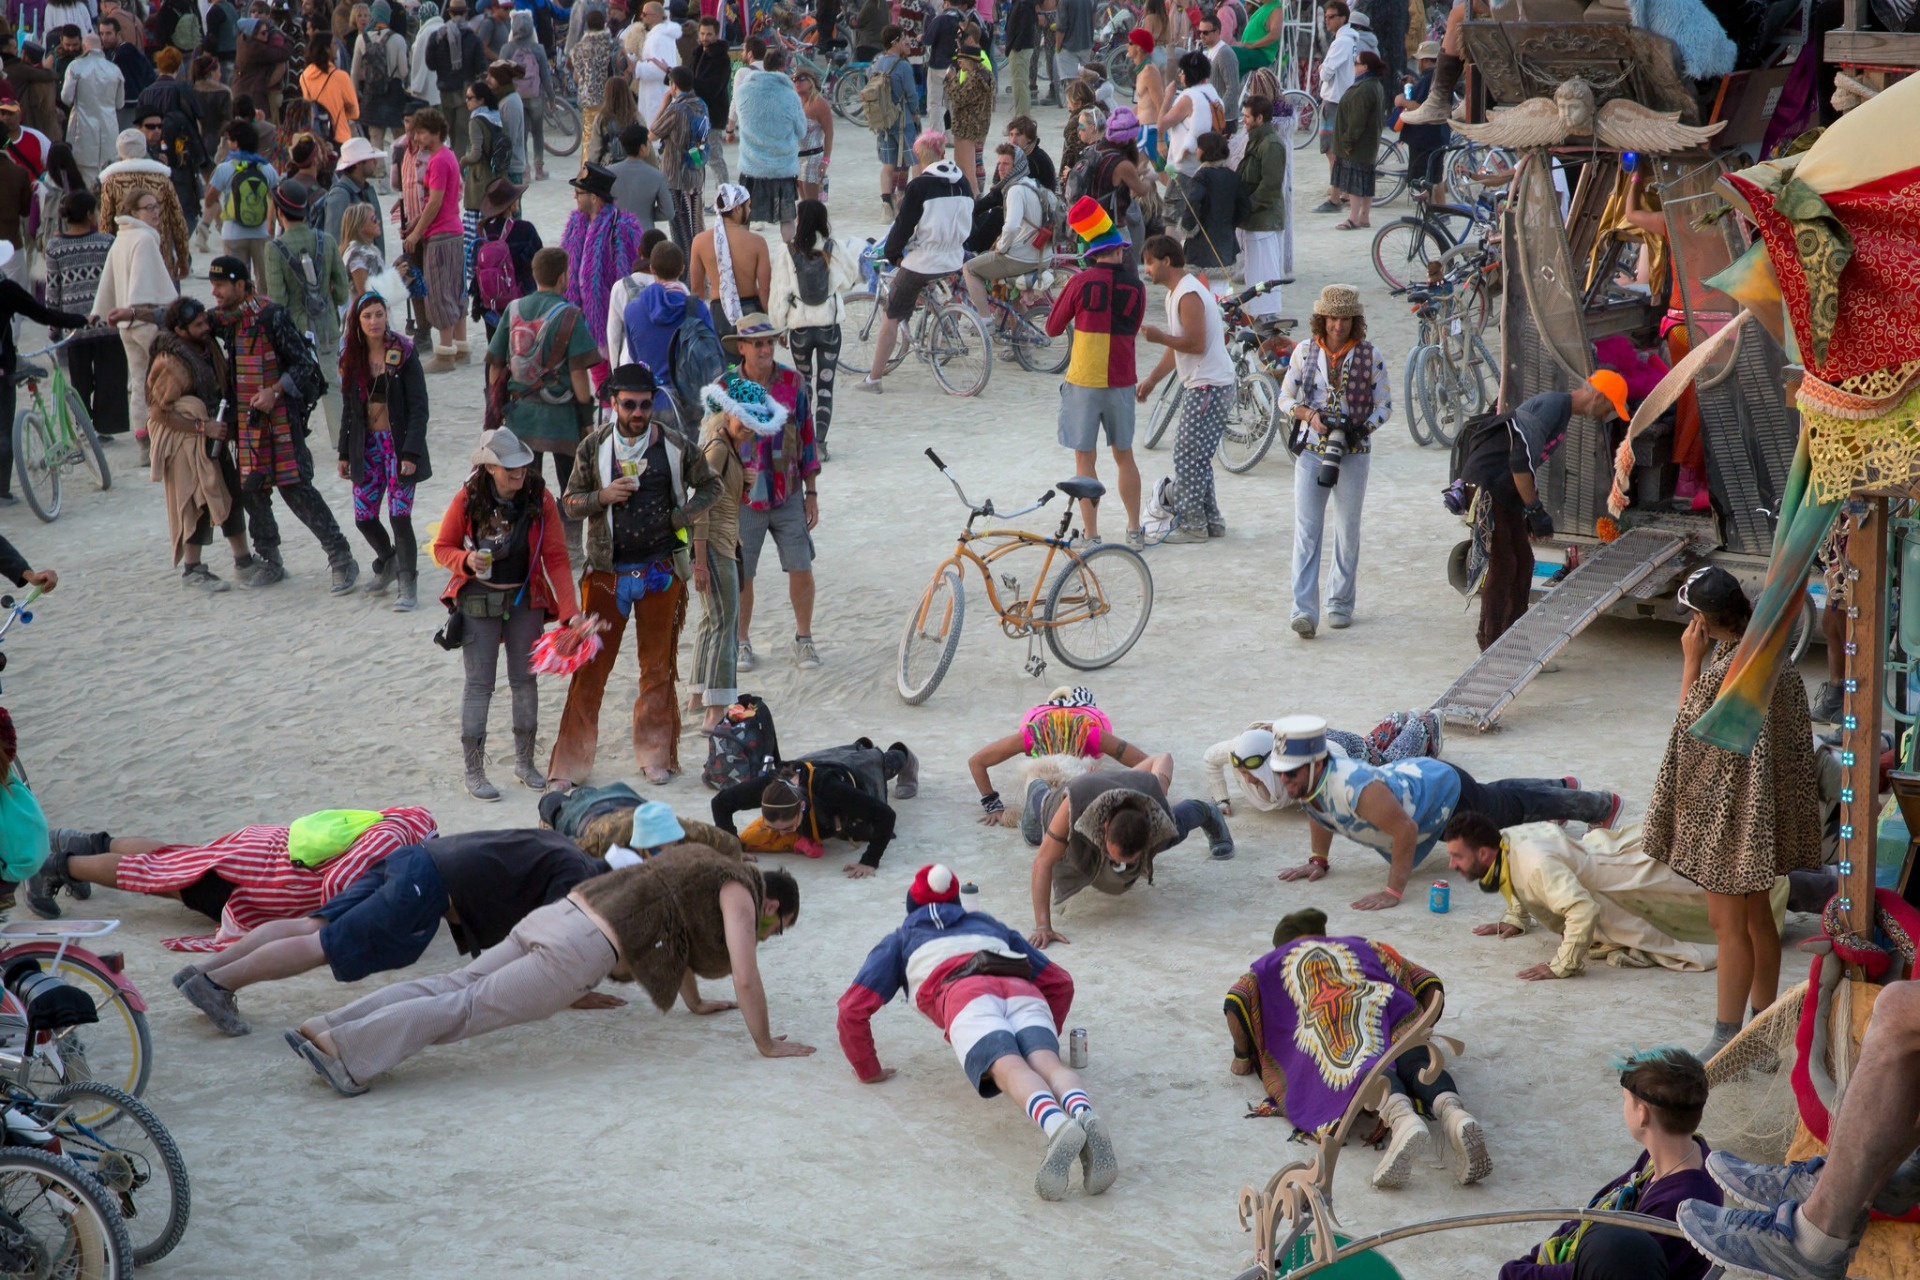 The Burning Man festival takes place in the desert